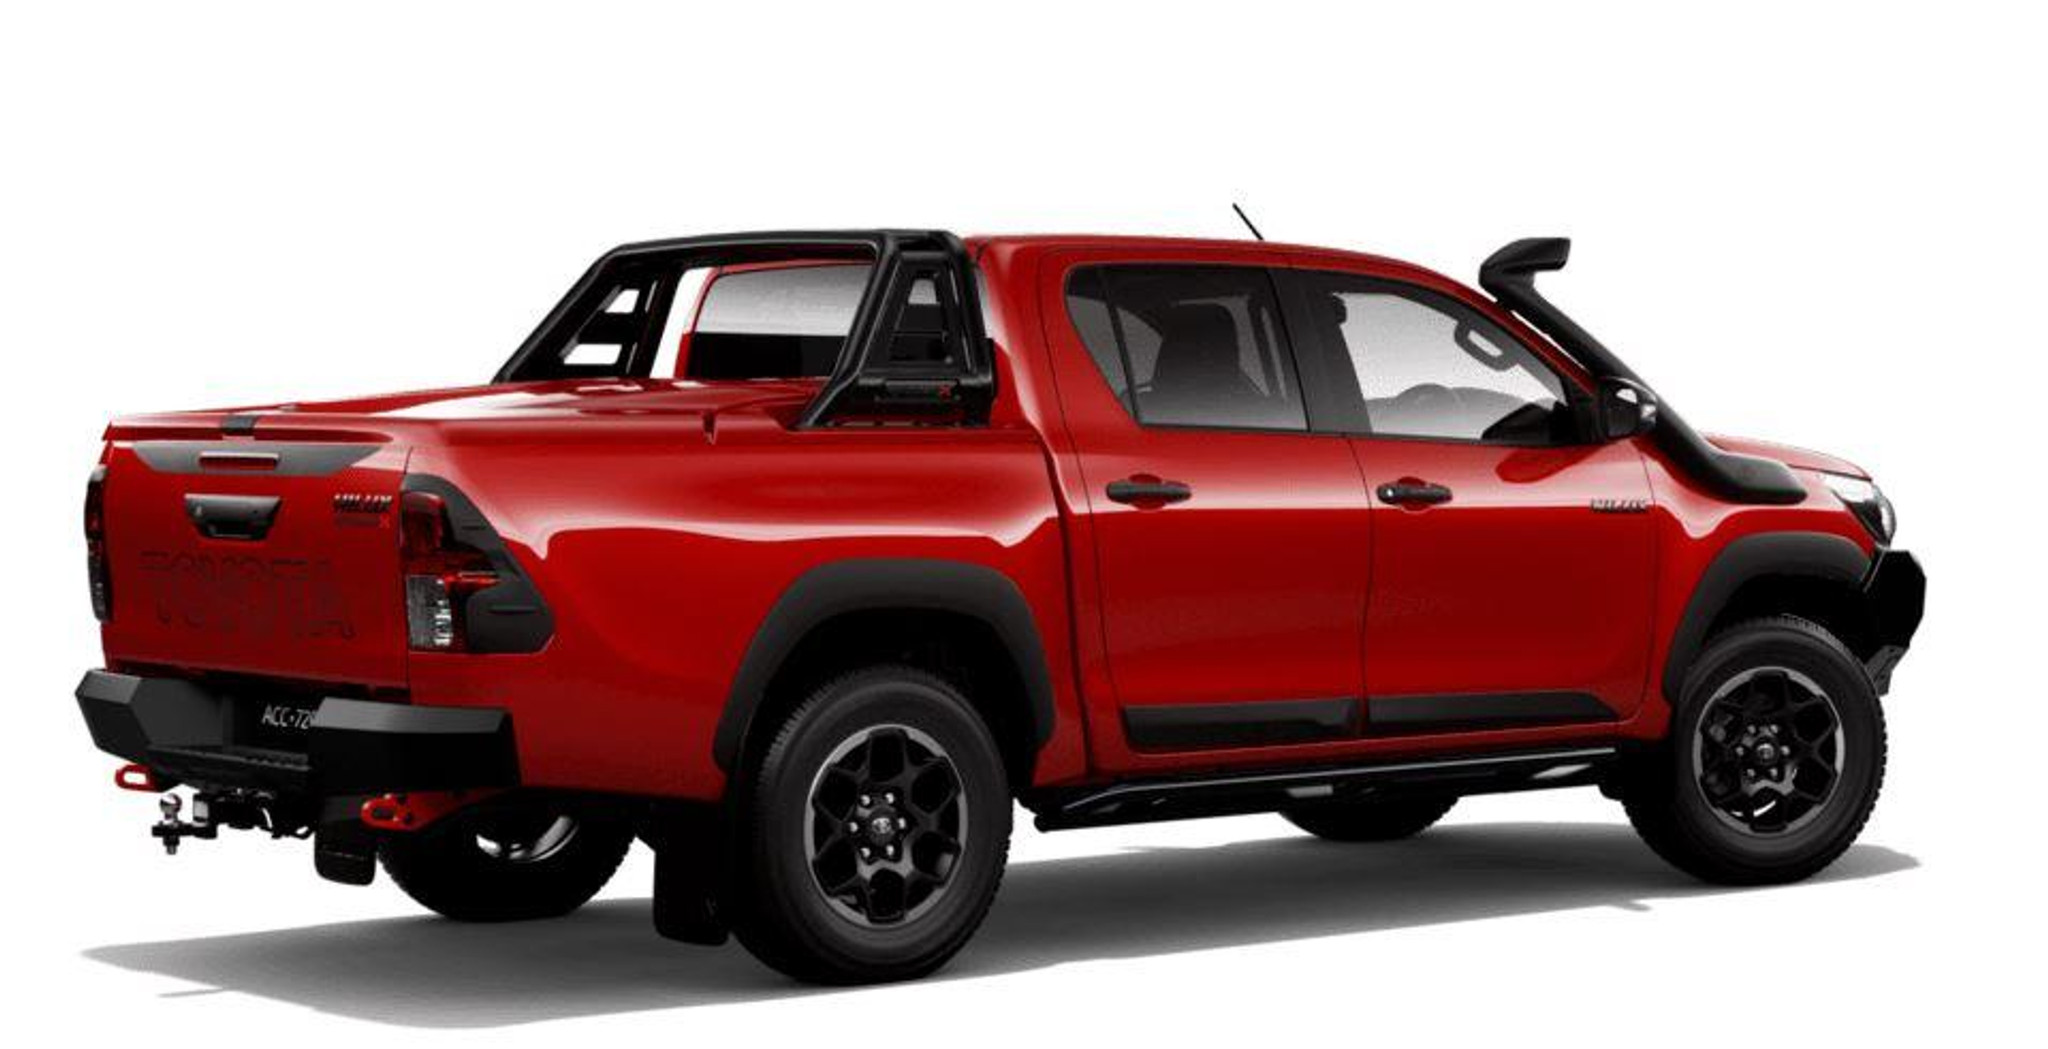 Rugged Series Hard Tonneau Cover Olympia Red 3t6 Part No Topzq7089900dq Phil Gilbert Toyota